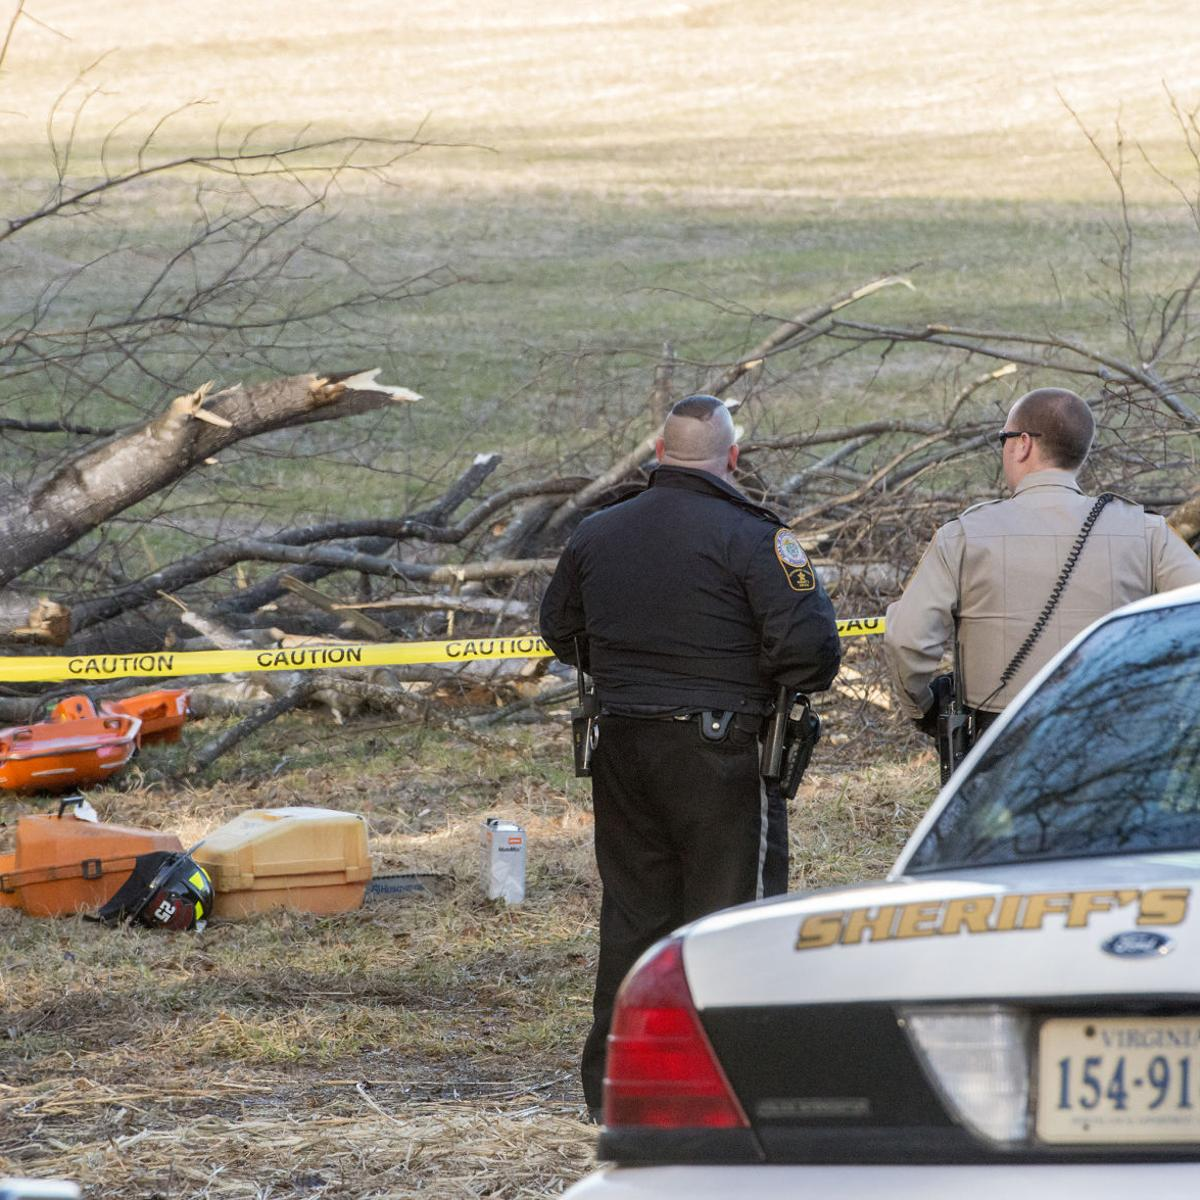 Tree-cutting experts urge caution following death in Dry